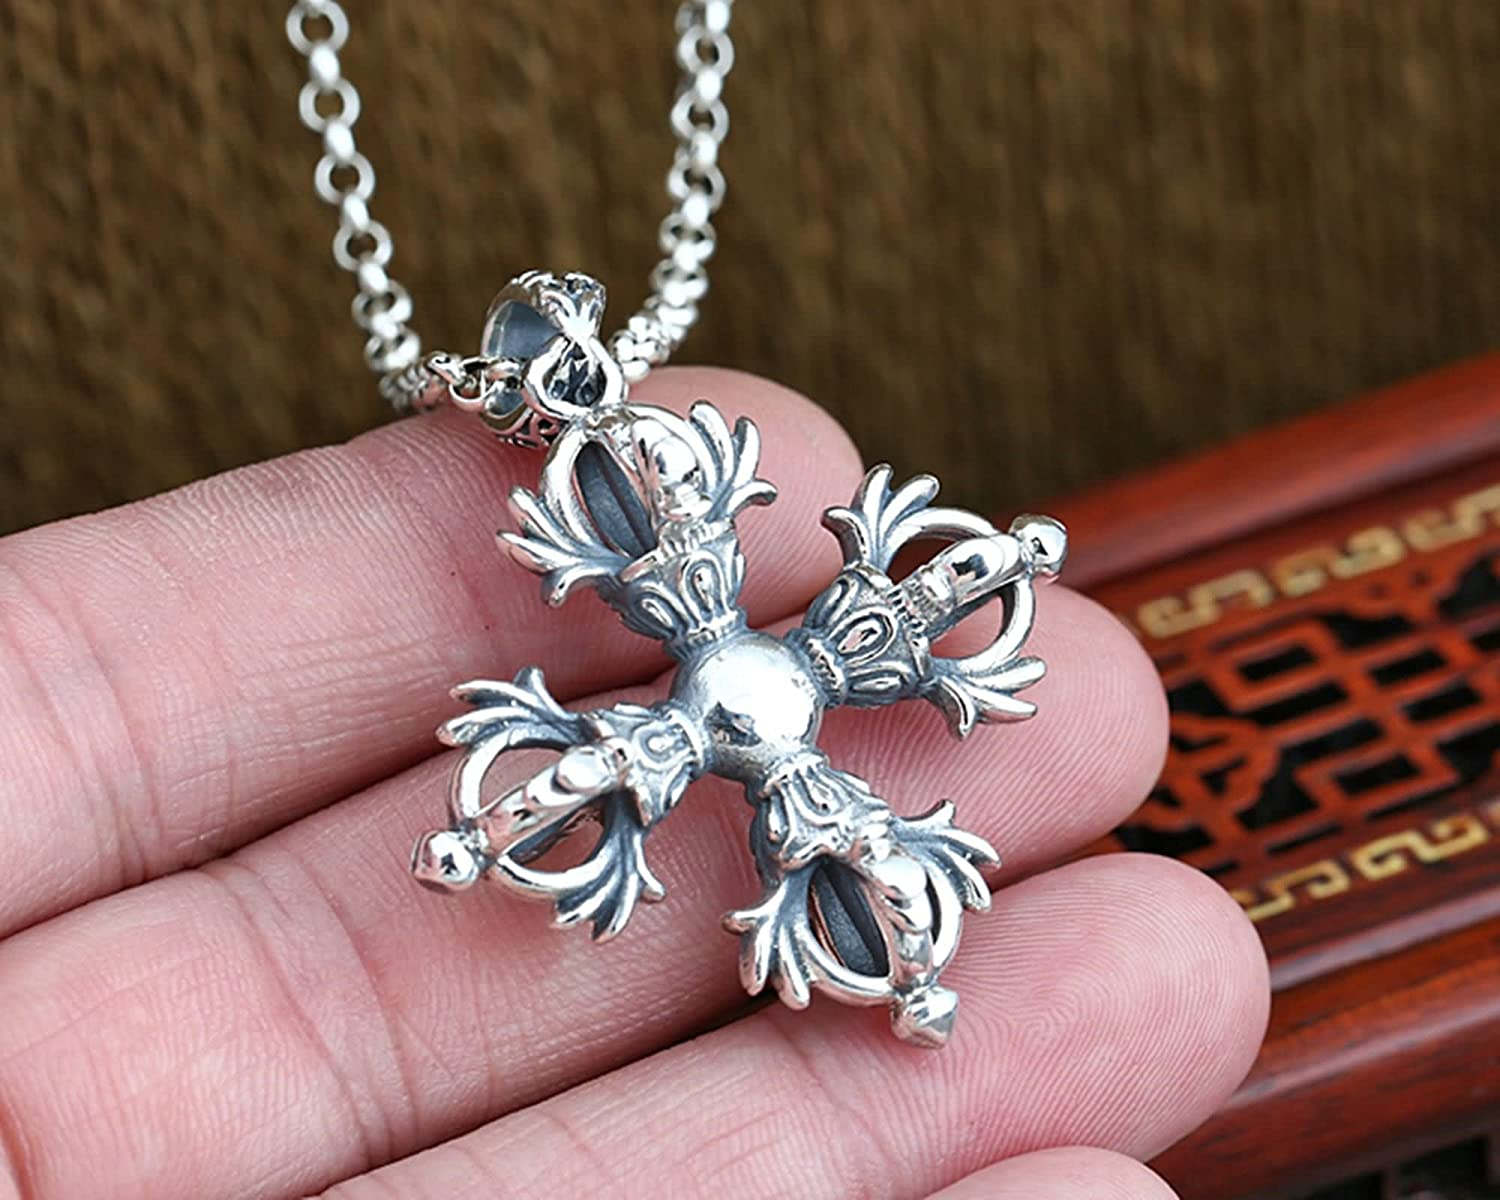 Aooaz Jewelry Pendant Necklaces for Men Women Silver Material Necklace Vajra Cross Chain Necklace Silver